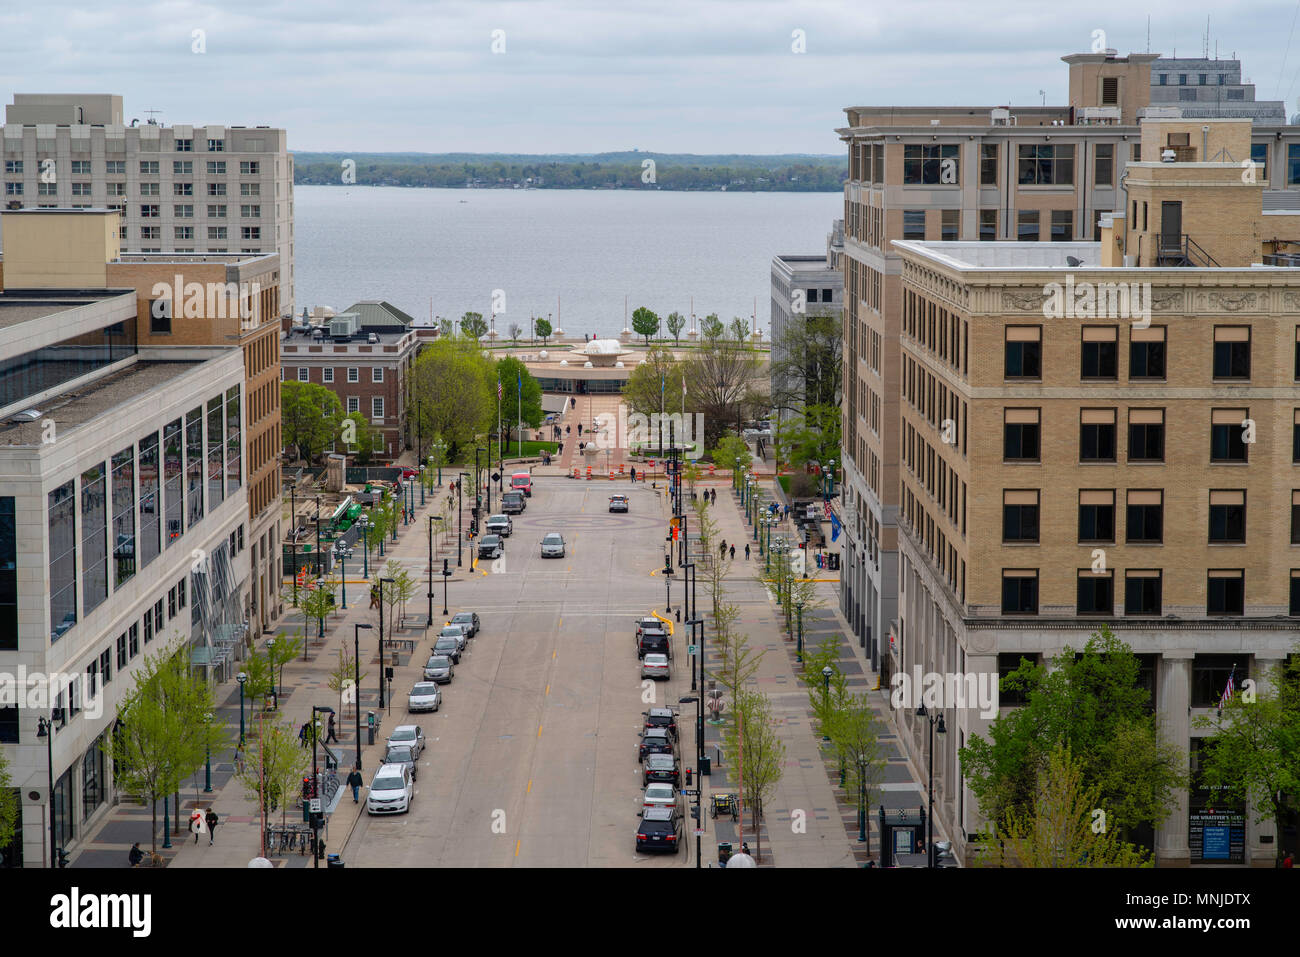 High angle view of Madison, Wisconsin, Martin Luther King Boulevard and the Monona Terrace Convention Center, taken from the Wisconsin State Capitol O - Stock Image